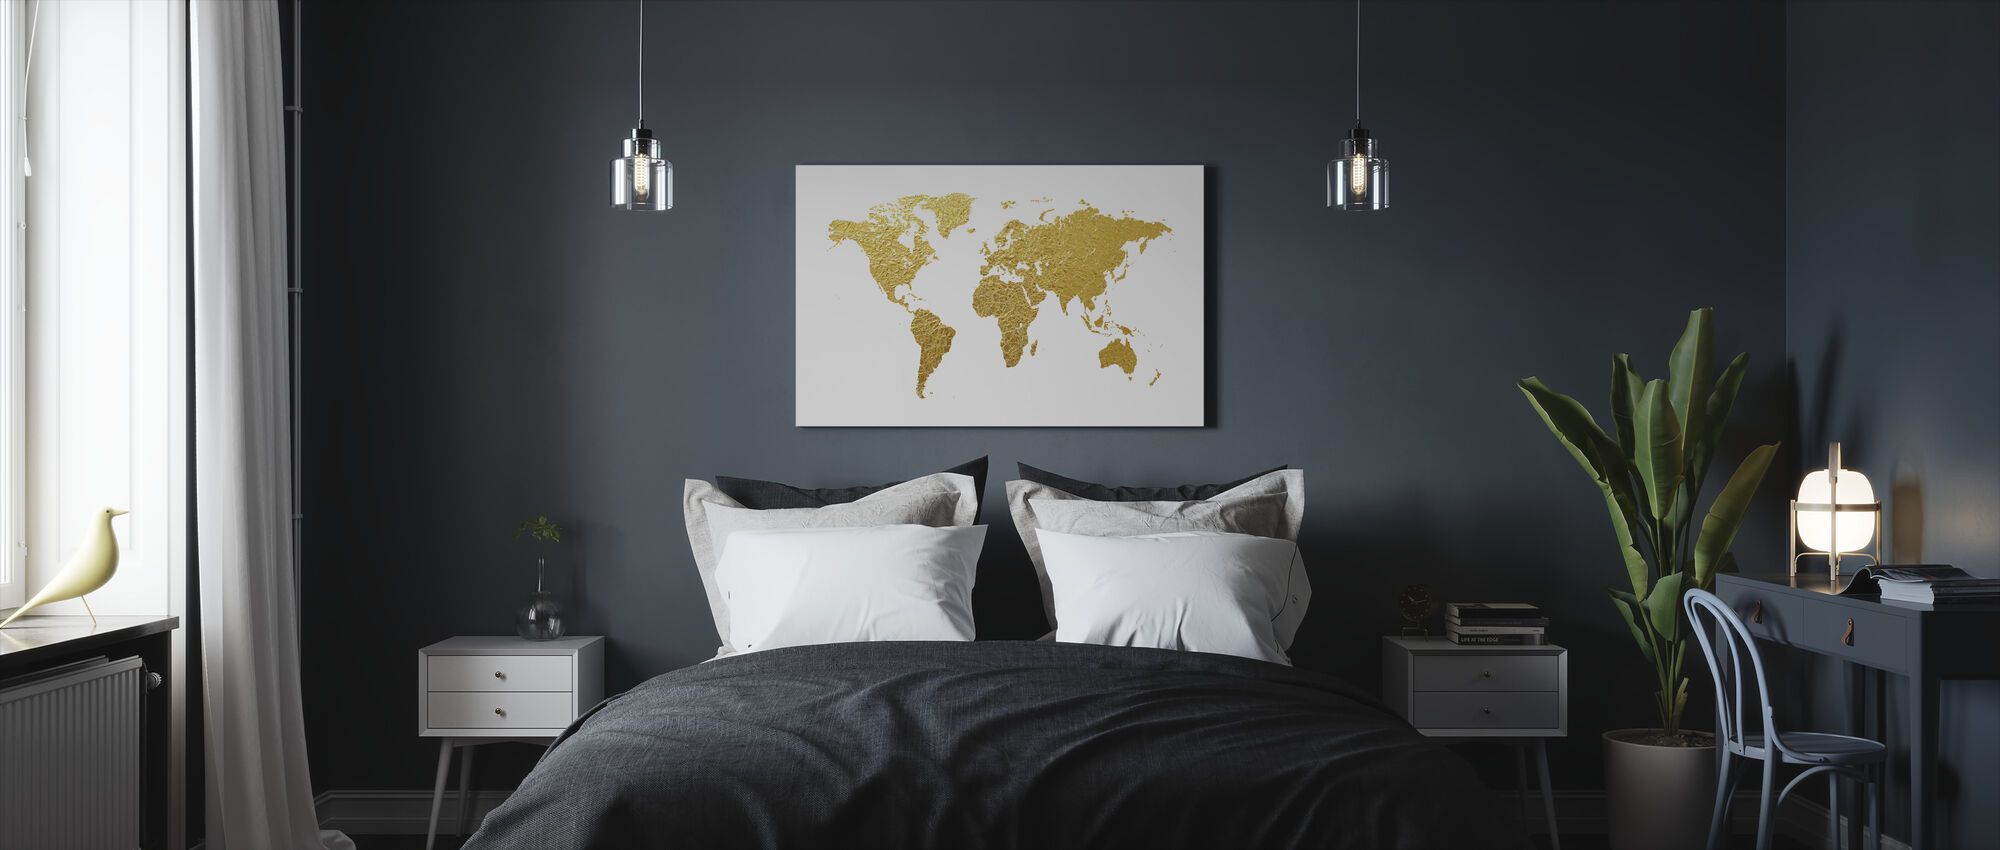 World Map Gold - Canvas print - Bedroom